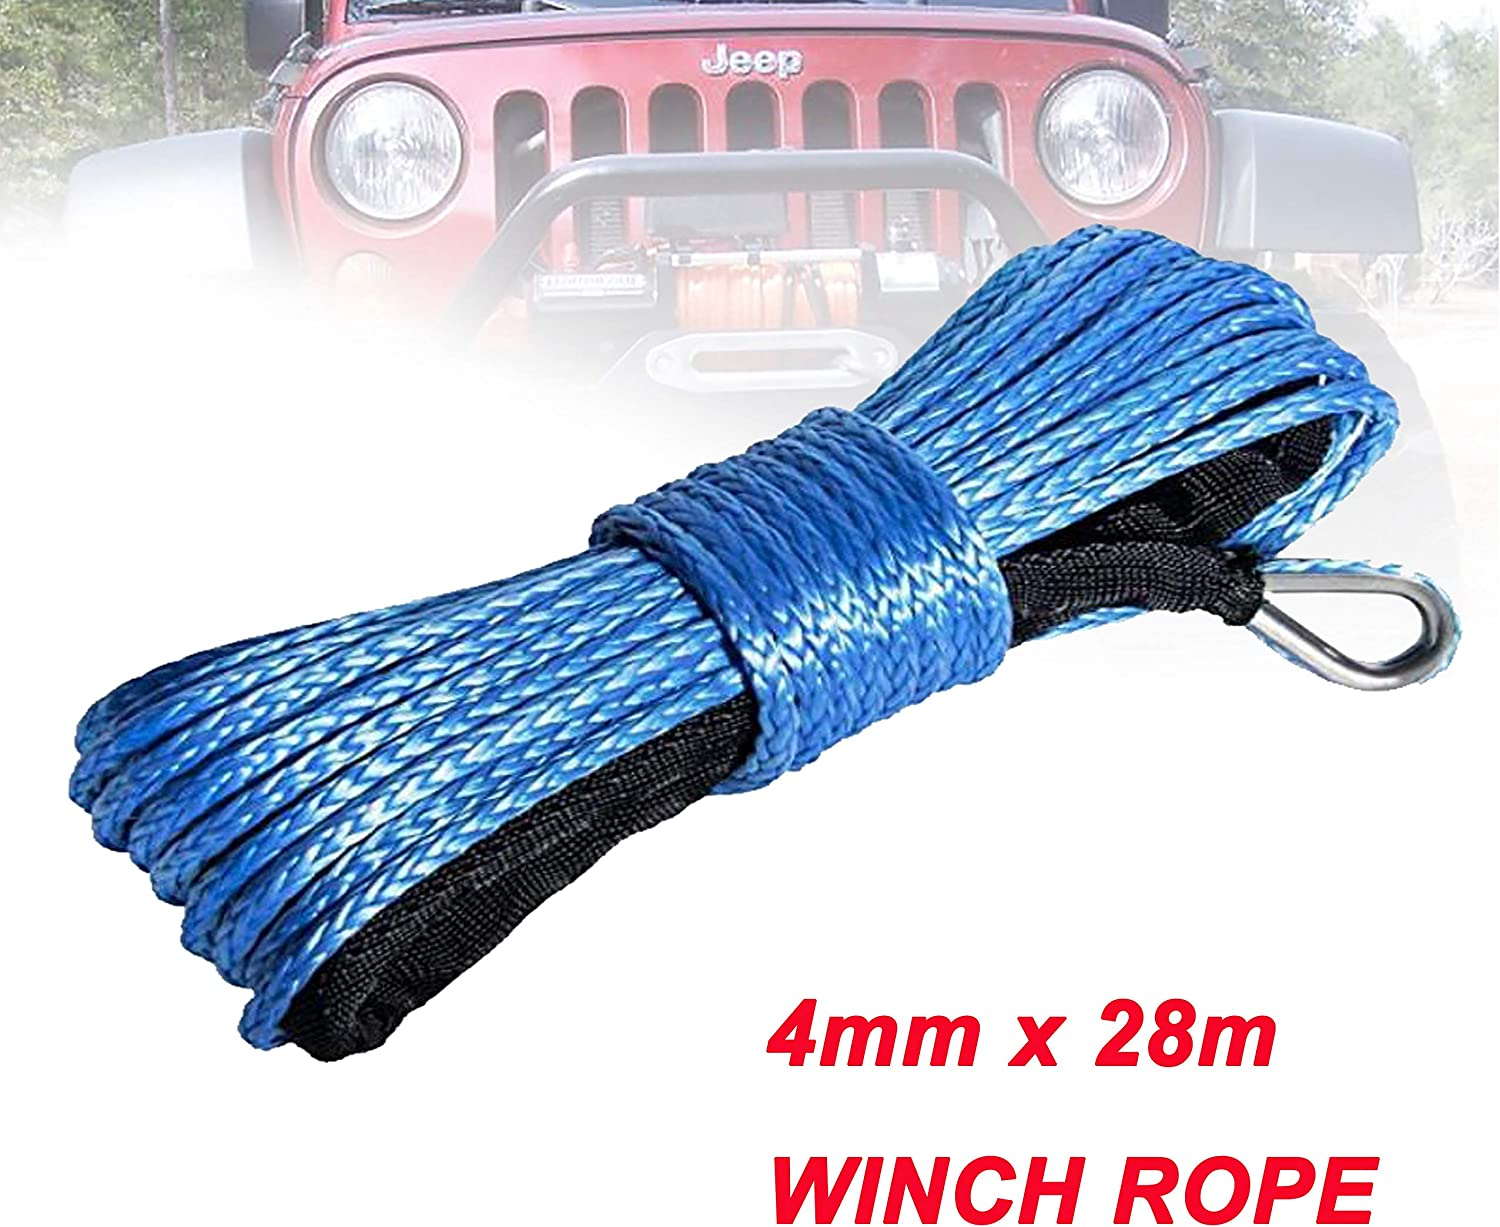 HUACHEN-LS Winch Synthetic Popular brand in the world shipfree Rope 4mm 28m Line x F